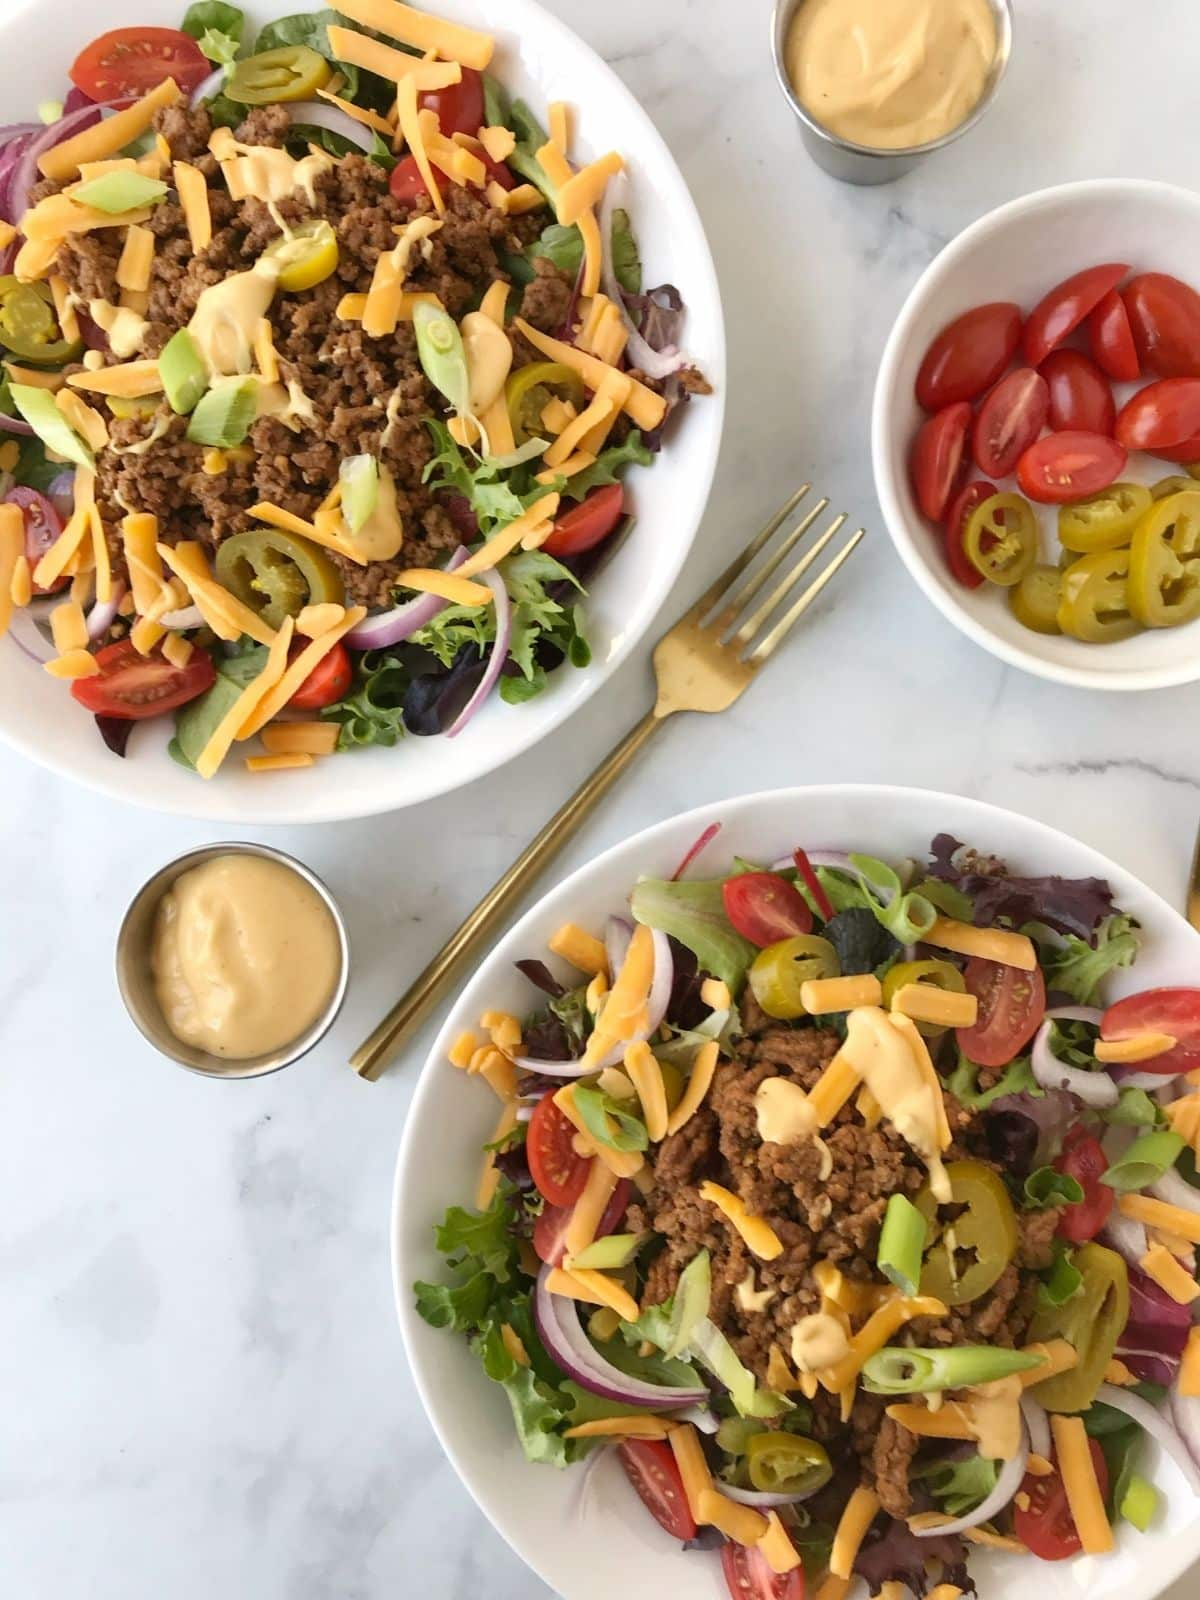 bowls of salad with cheeseburger toppings and dressing on the side